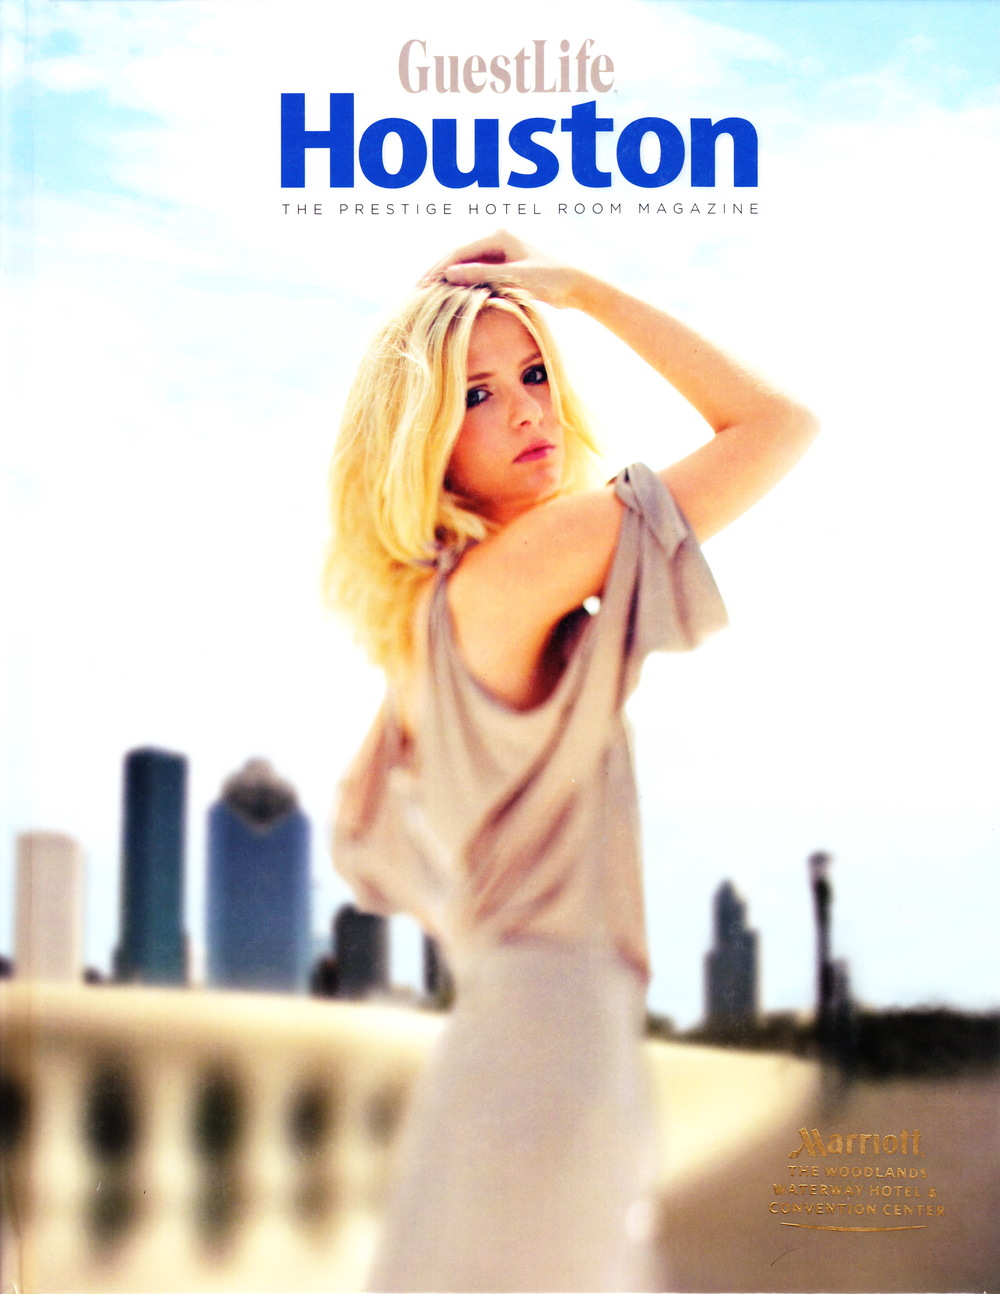 GuestLifeHoustonCover.jpg